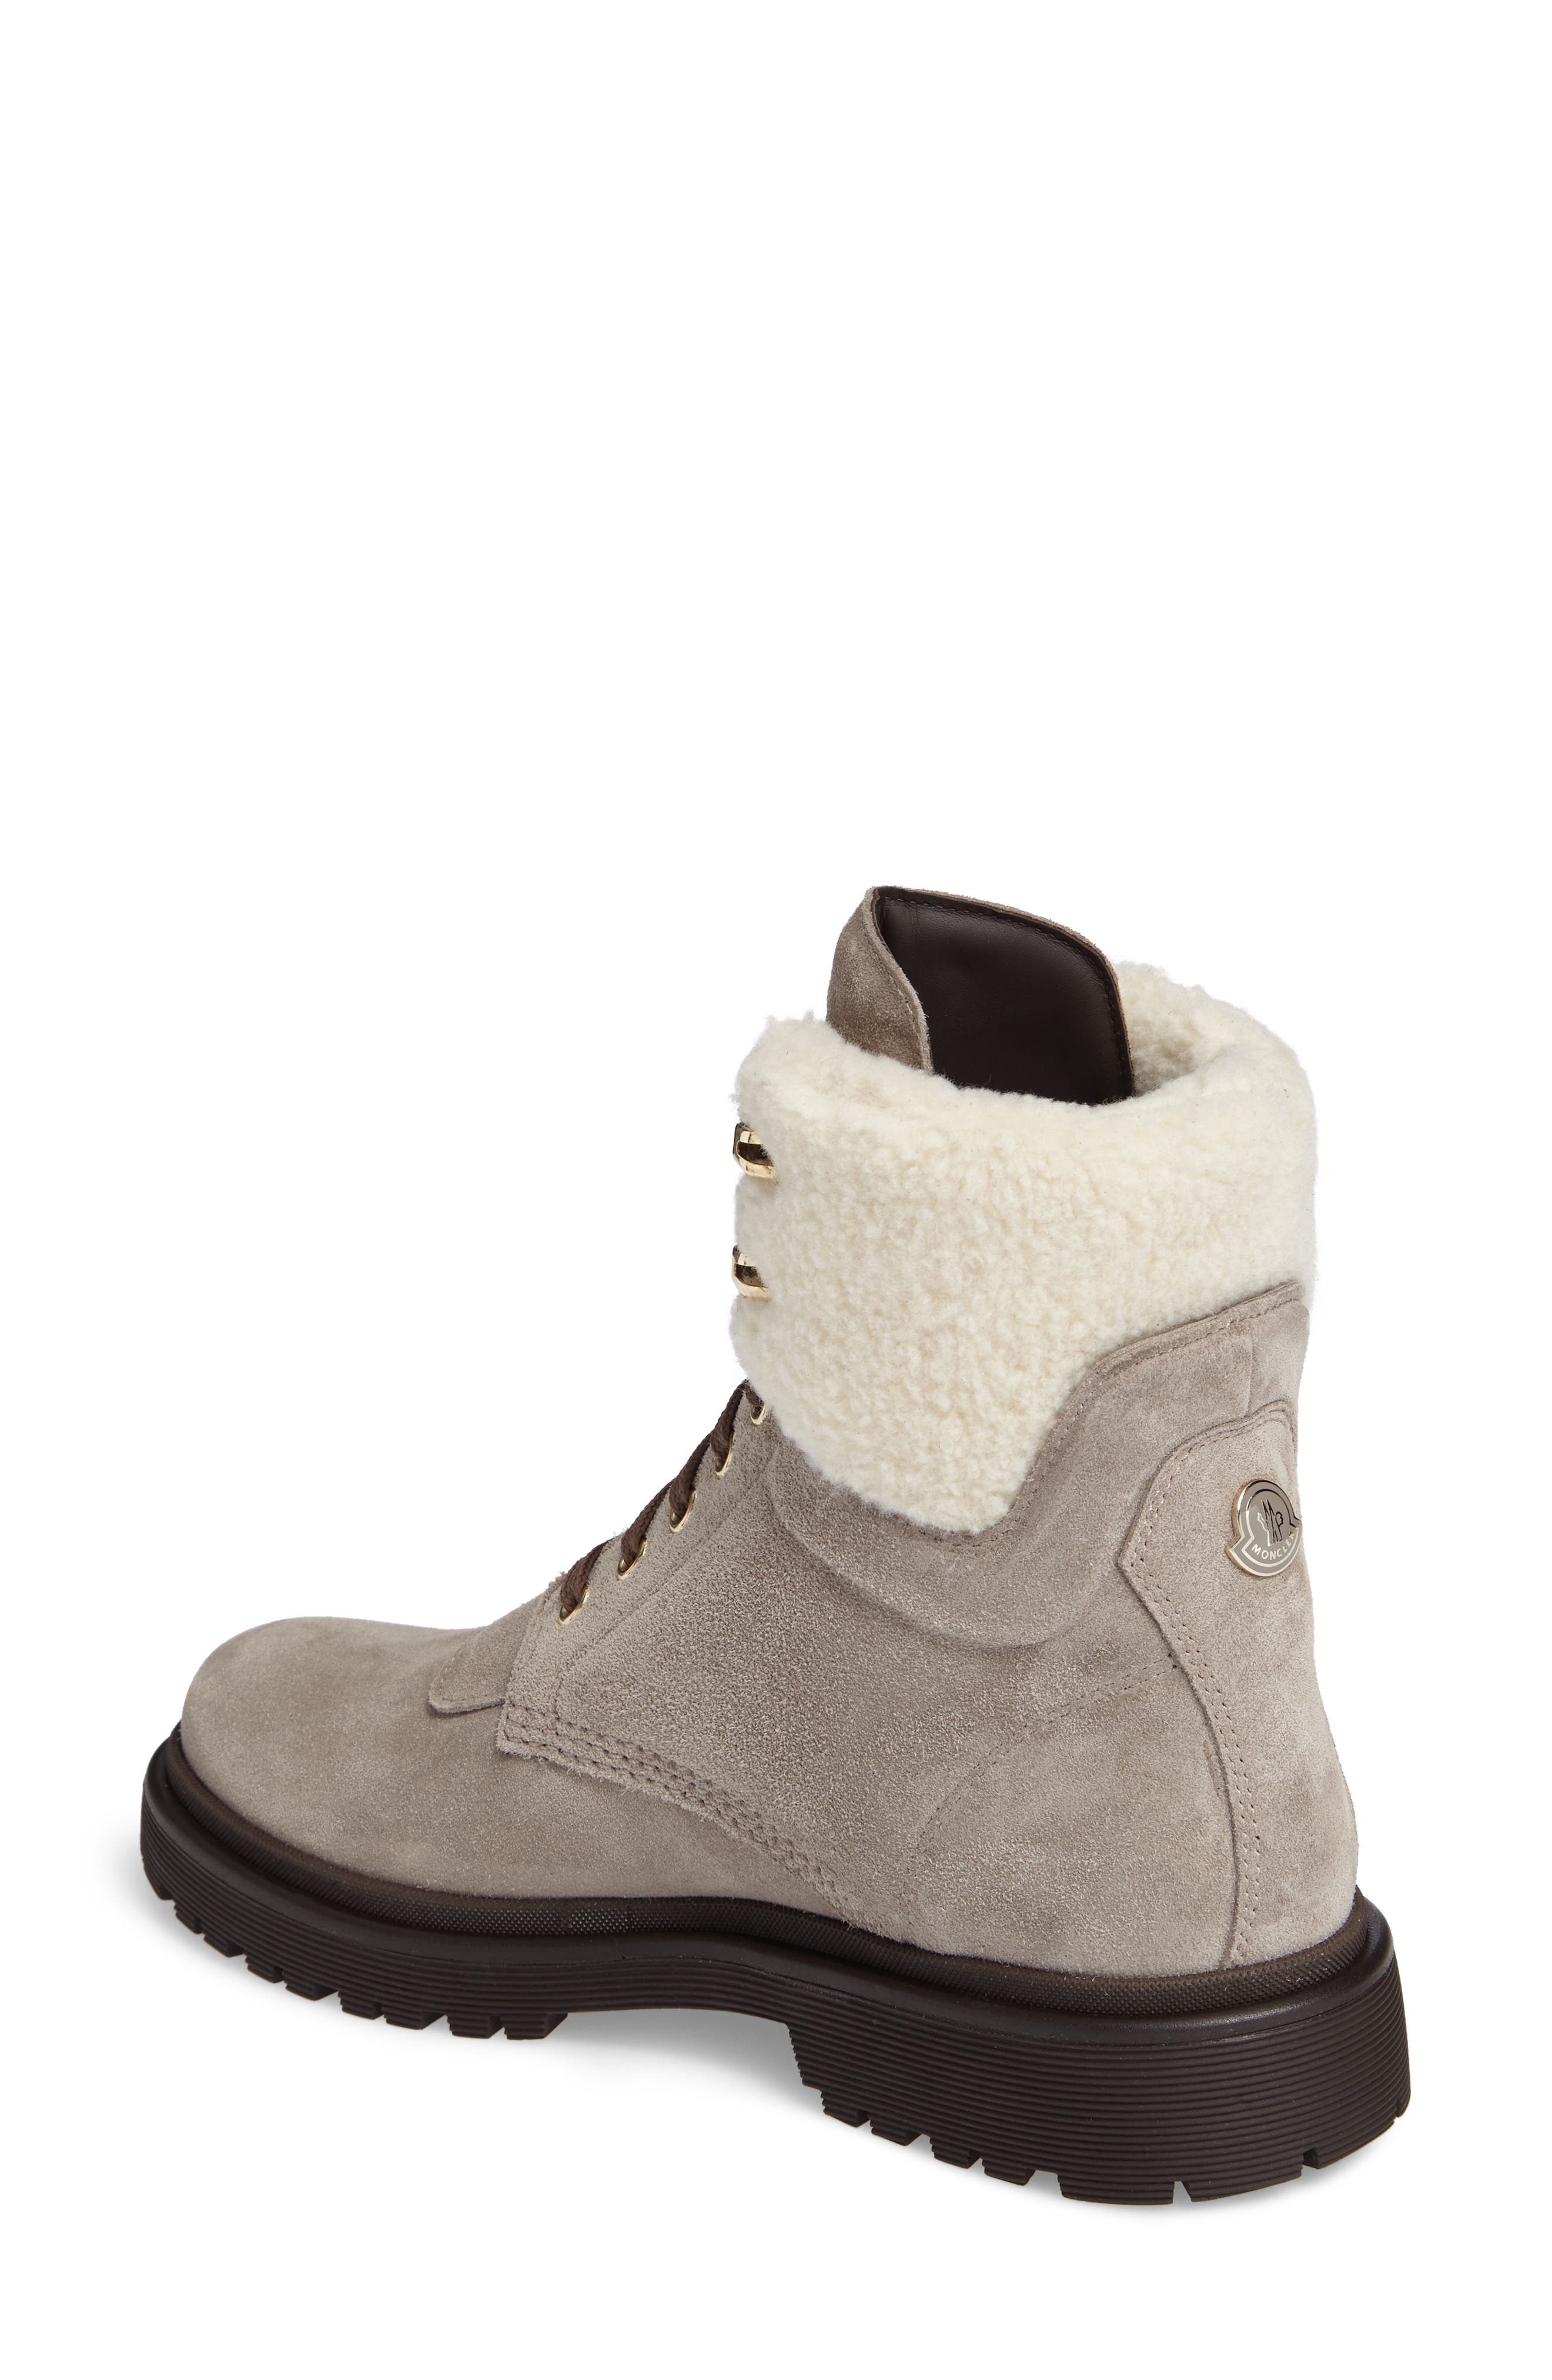 Patty Scarpa Faux Shearling Cuff Boot,                             Alternate thumbnail 2, color,                             Beige